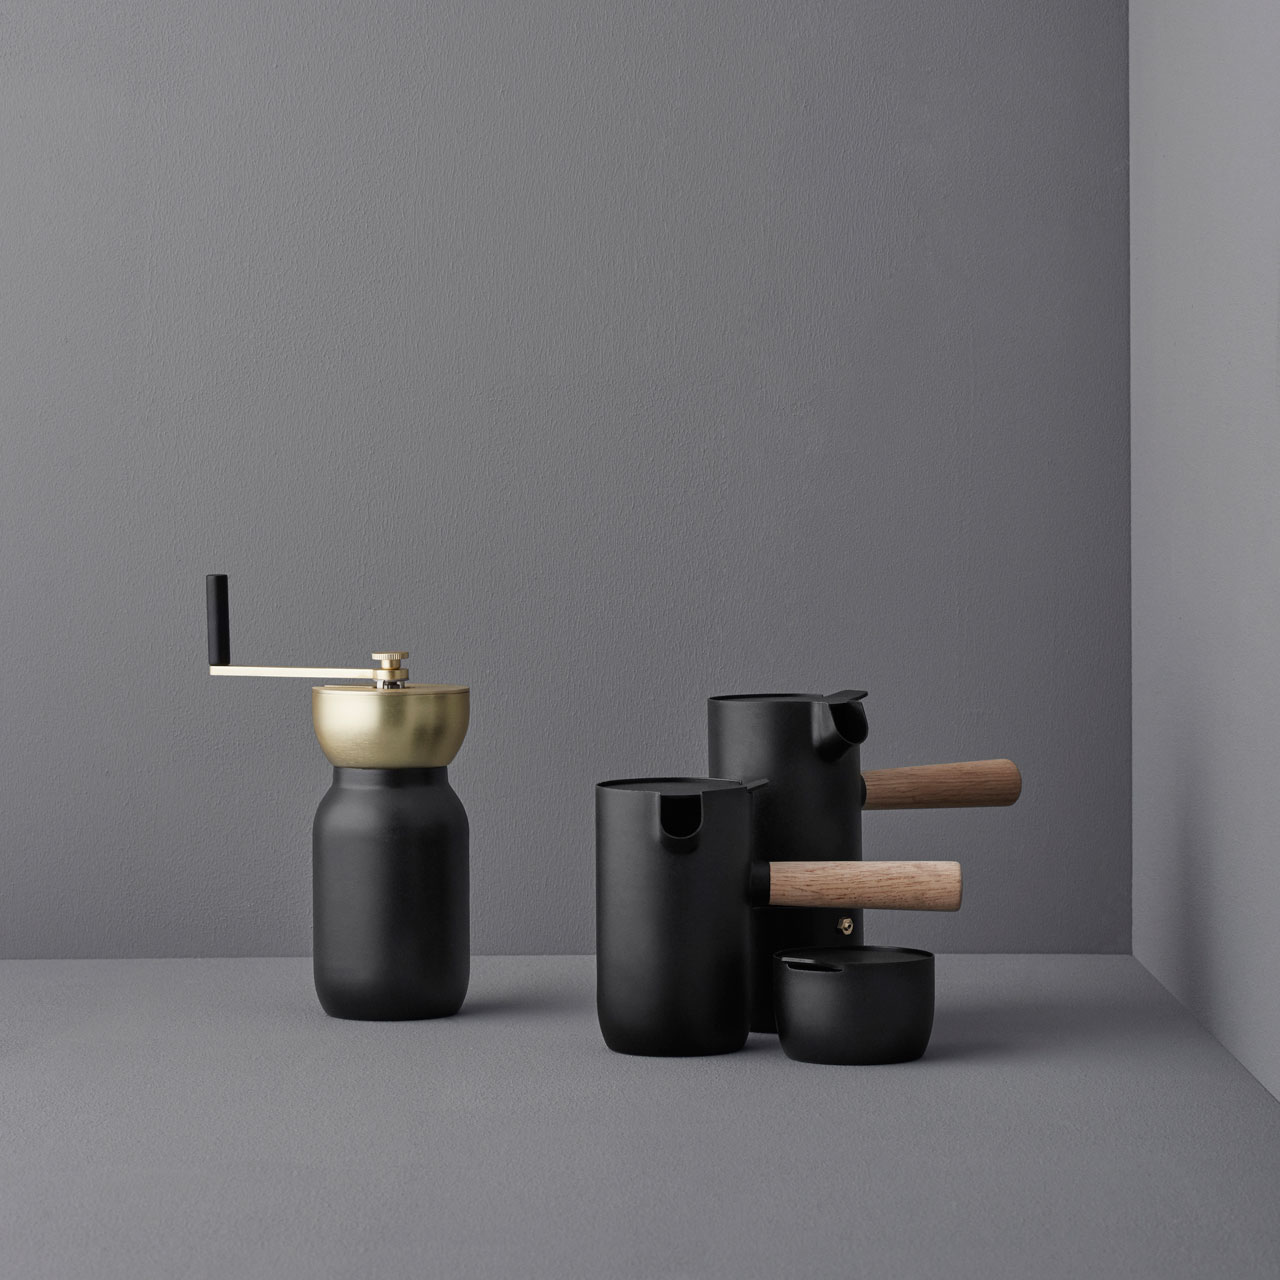 the-collar-collection-by-daniel-debiasi-and-federico-sandri-something-design-studio-for-stelton